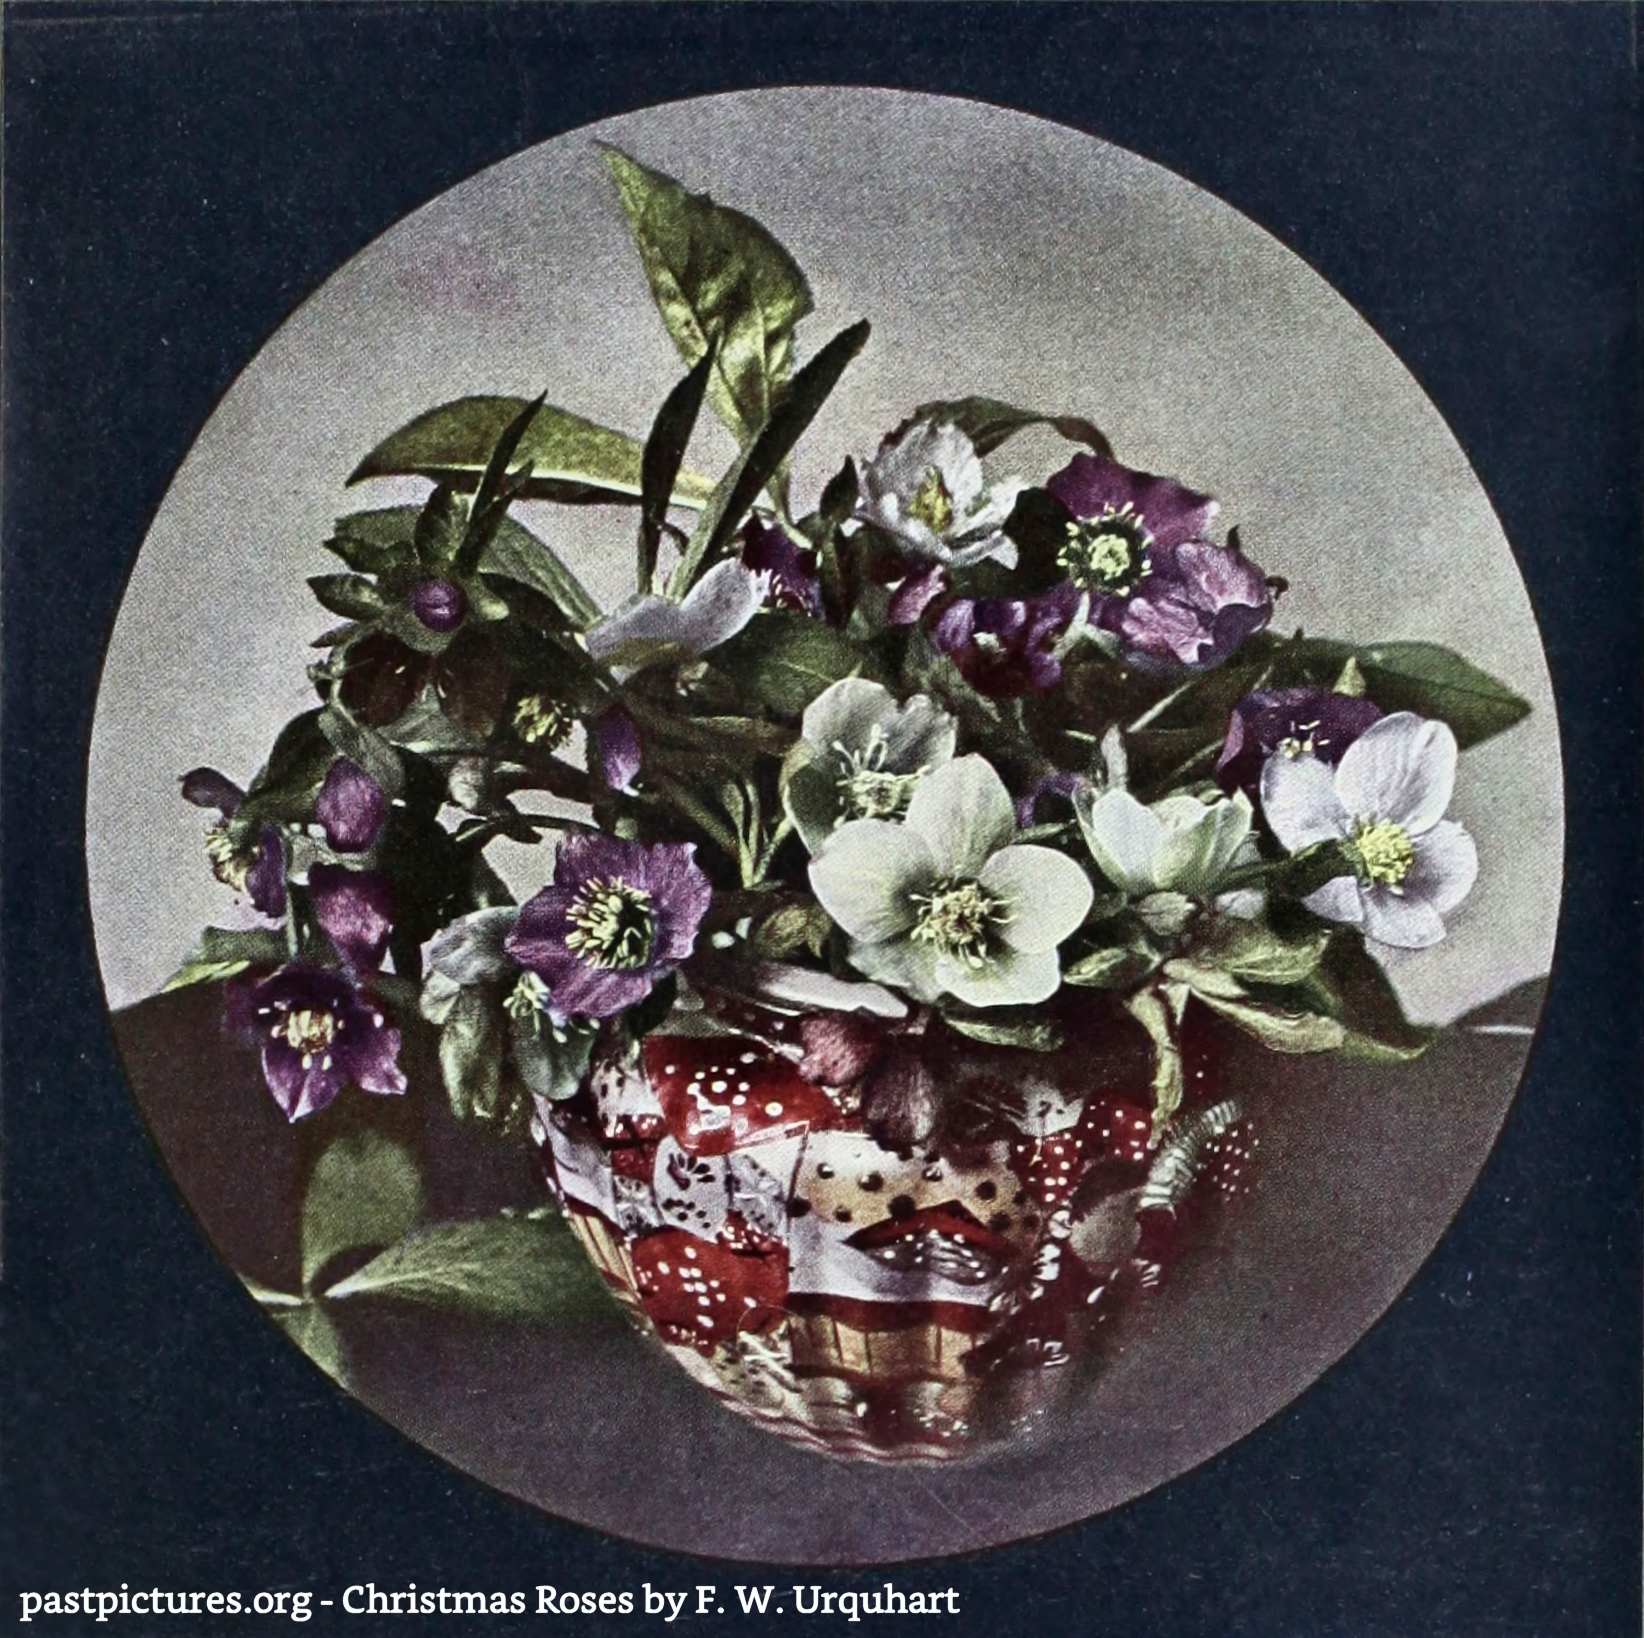 Christmas Roses by F. W. Urquhart about 1908